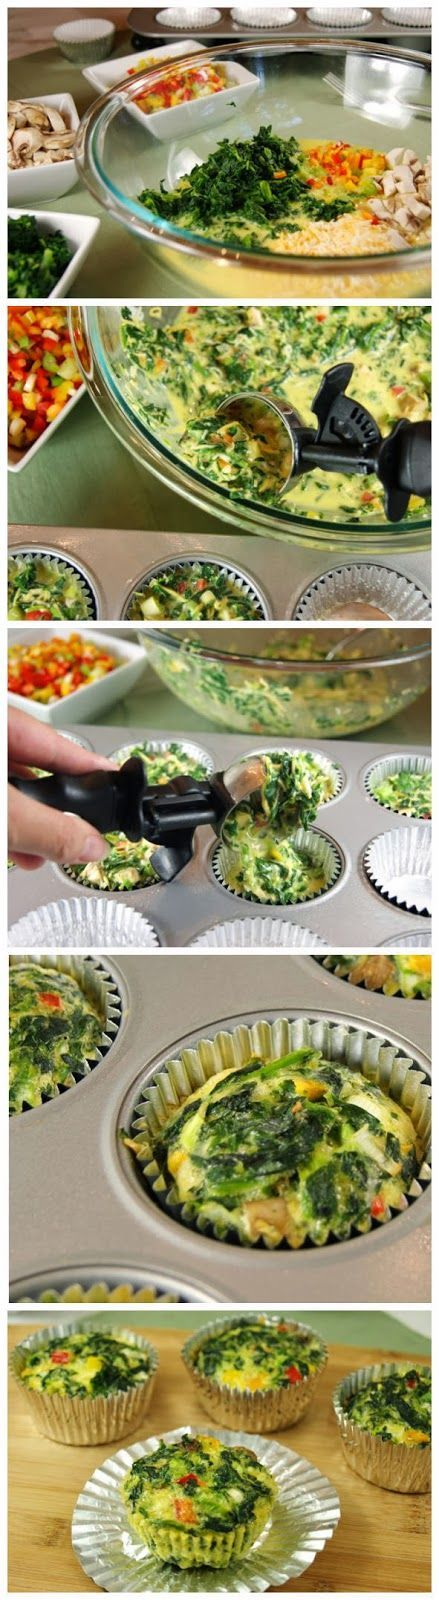 Vegetable Quiche Cups To-Go   CookJino